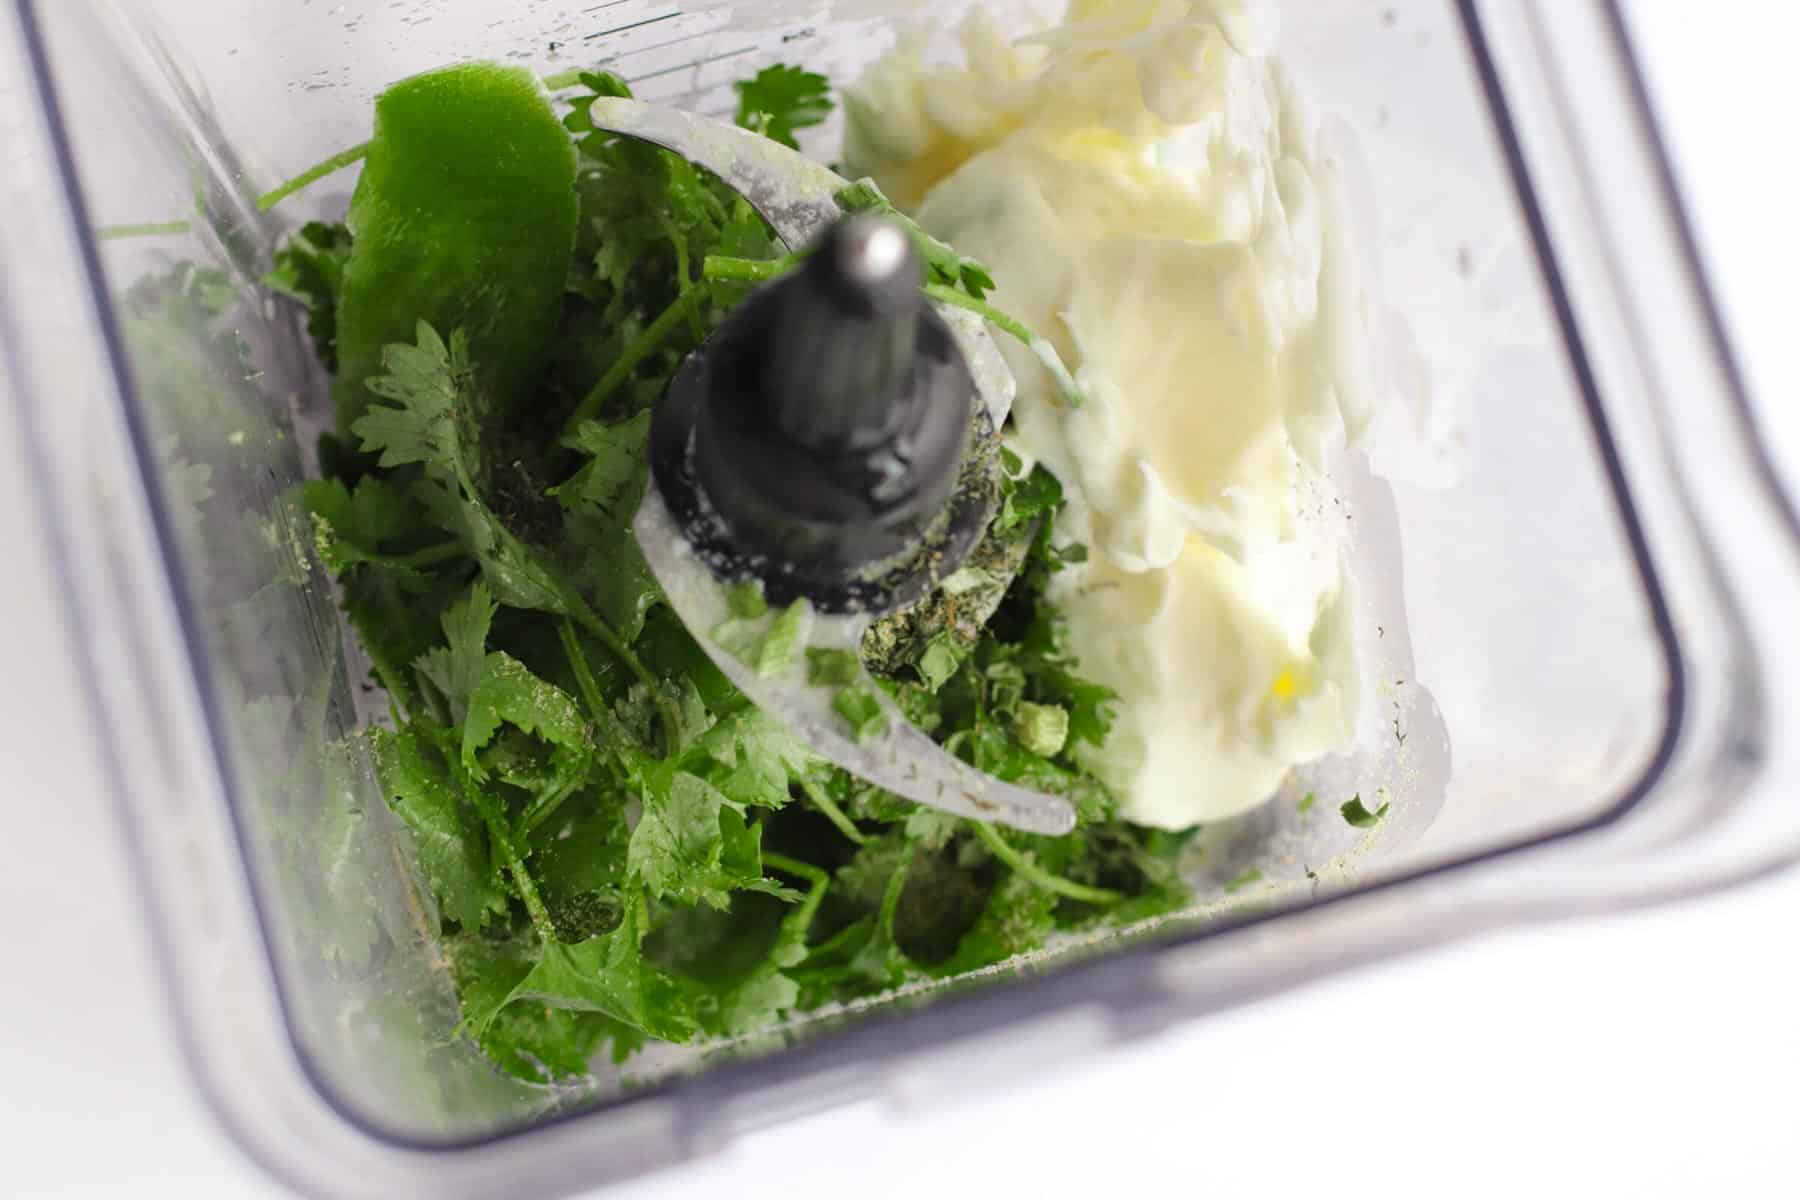 cilantro, mayonnaise, and other dressing ingredients in a blender